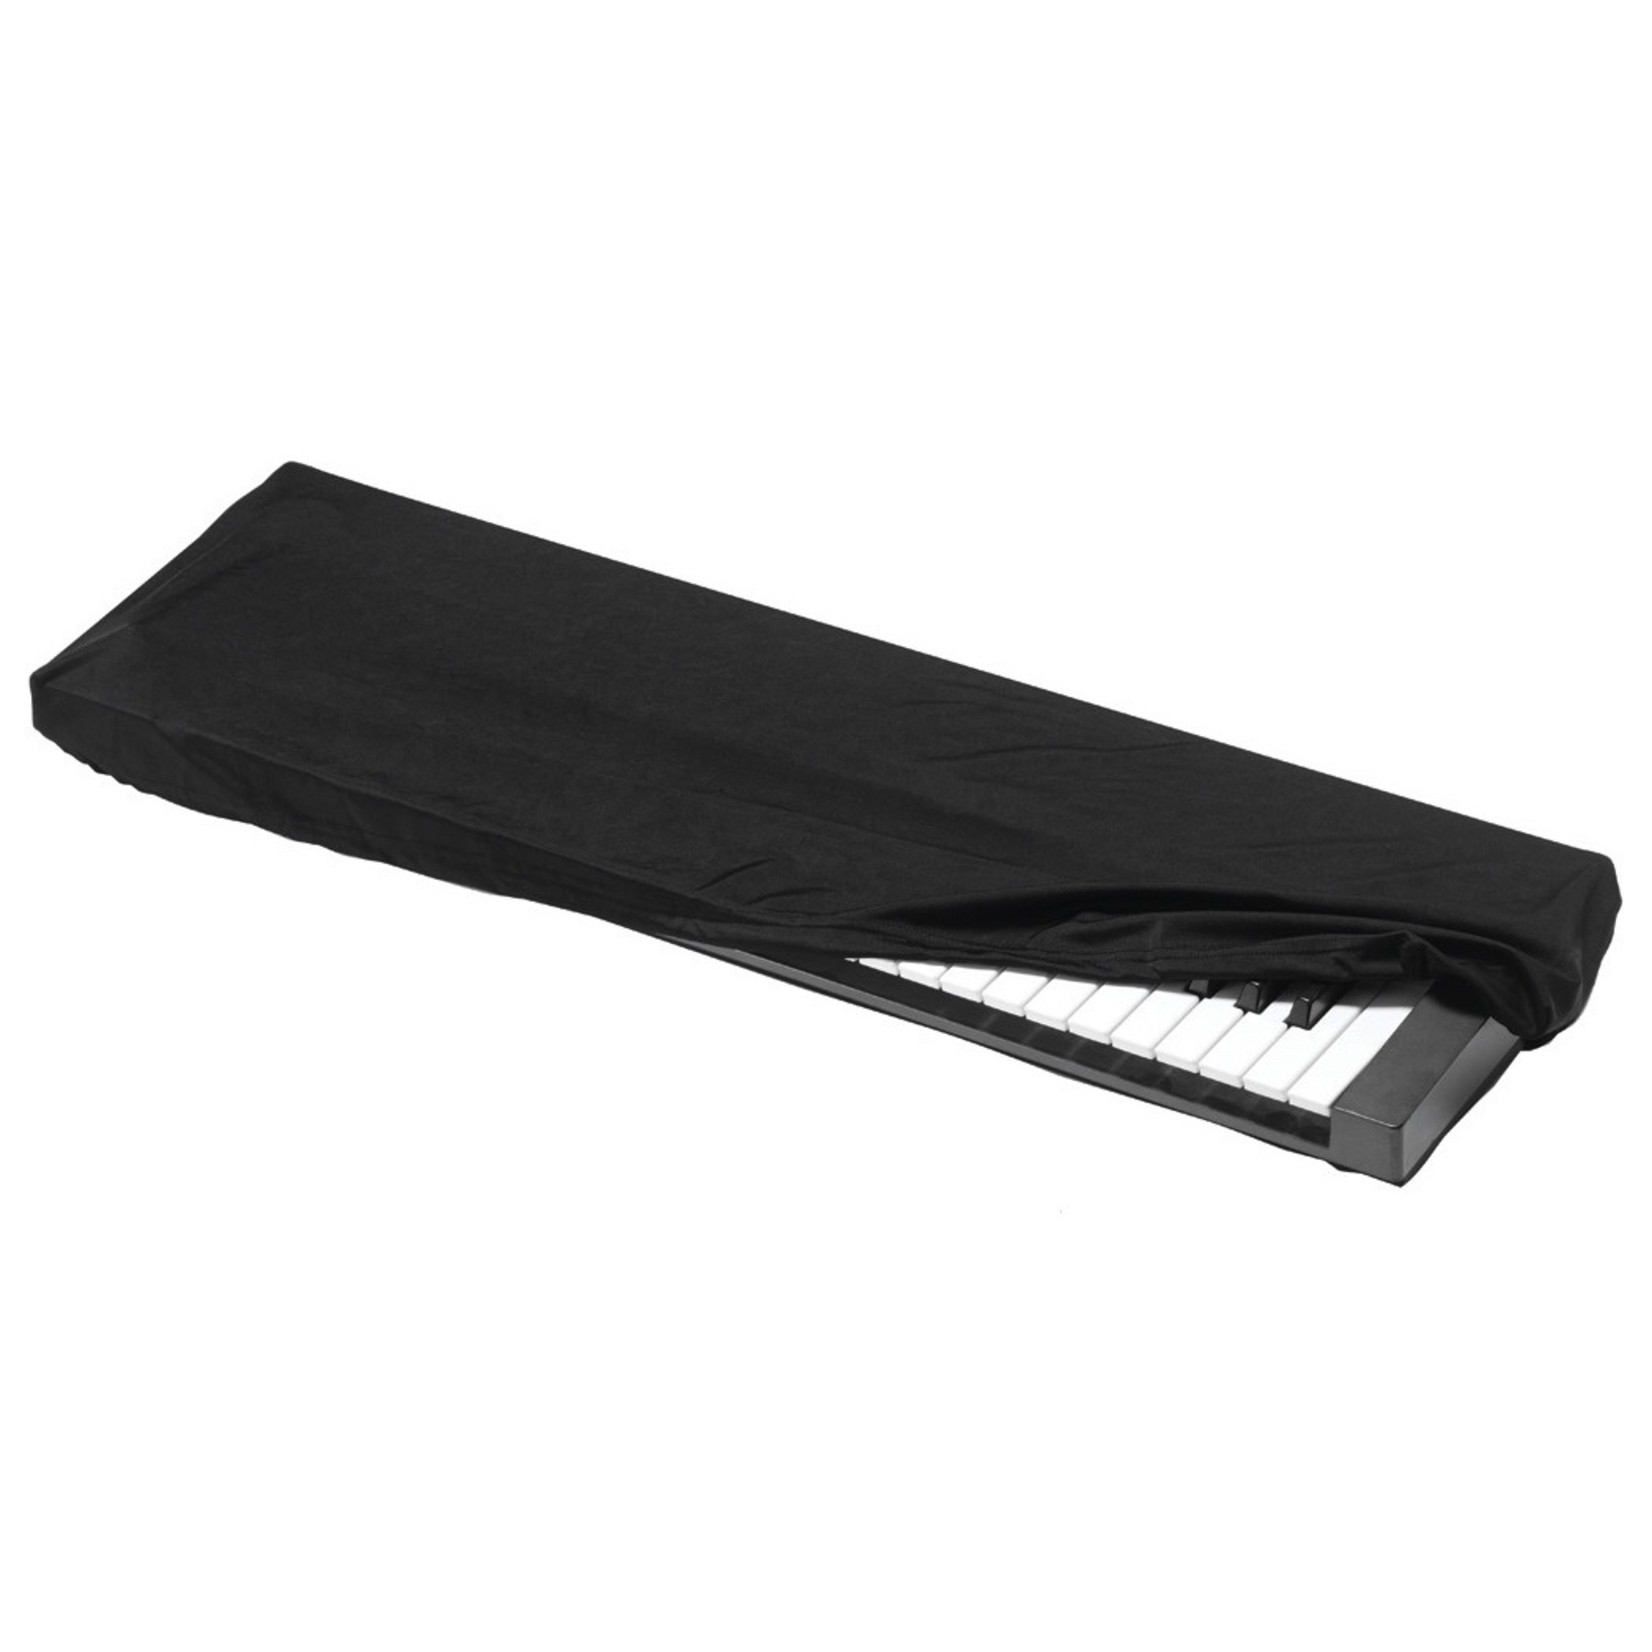 Kaces Kaces Stretchy Keyboard Dust Cover - SMALL (KKC-SM) (for 49- and 61-key keyboards, or smaller)